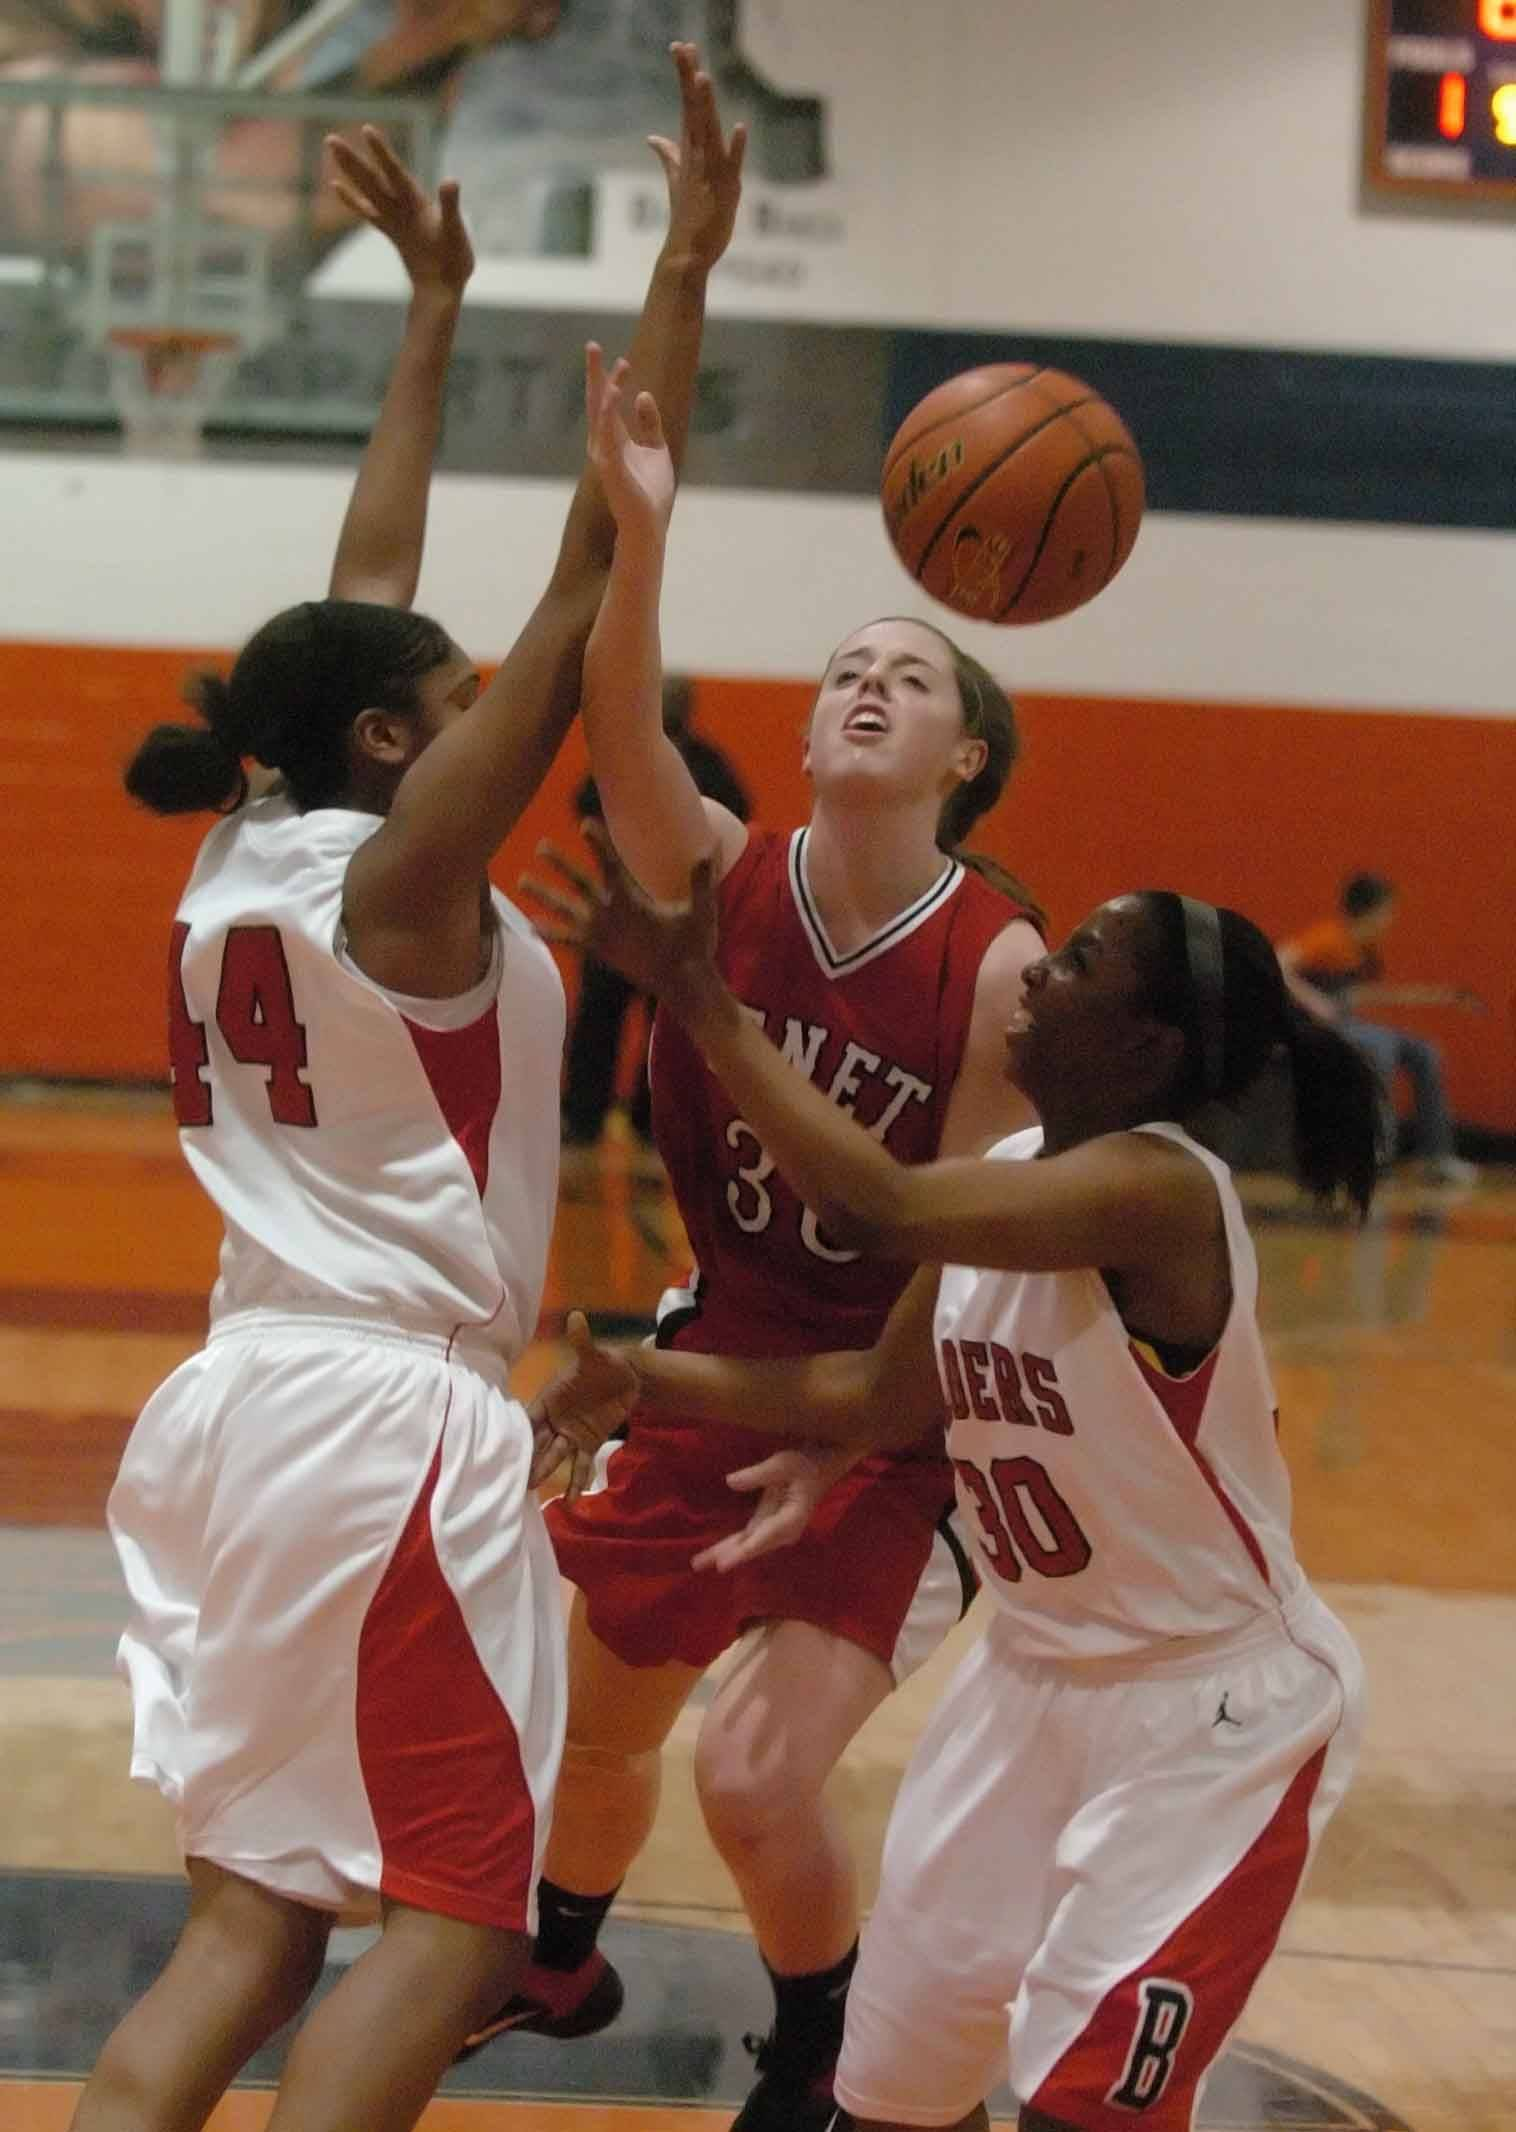 Ashley Veselik of Benet Academy puts up a shot while Morgan Tuck and Kierra Ray of Bolingbrook play defense.